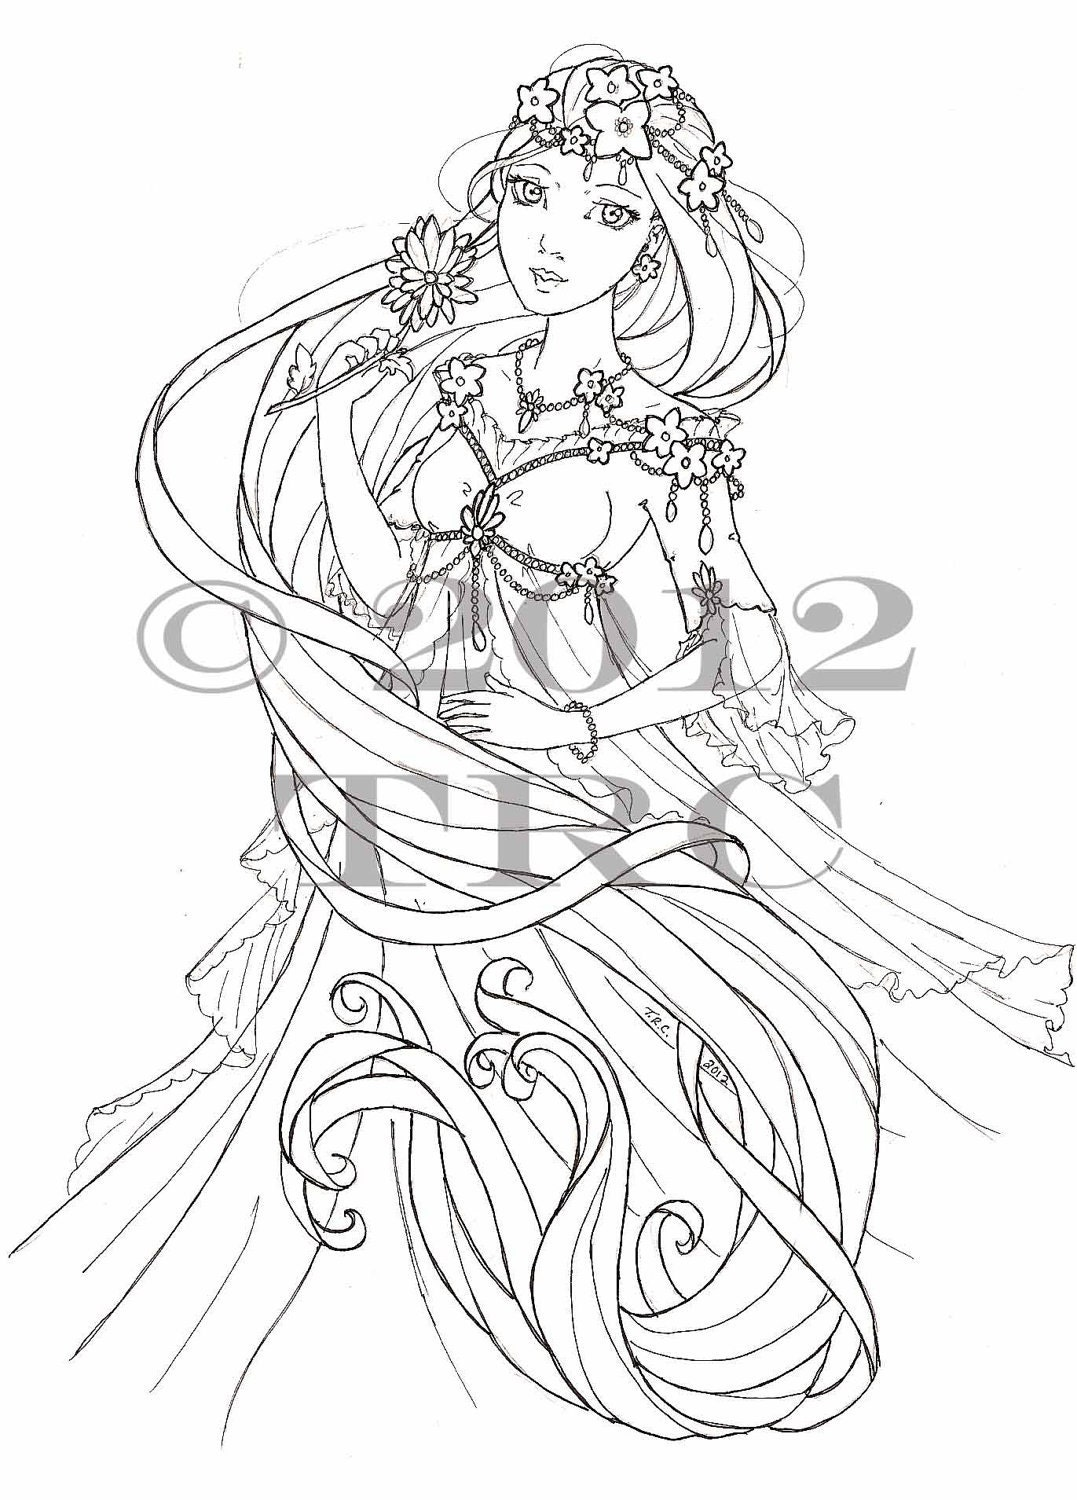 Anime Princess Coloring Pages Printable With Anime Fairy Anime Princess Coloring Pages